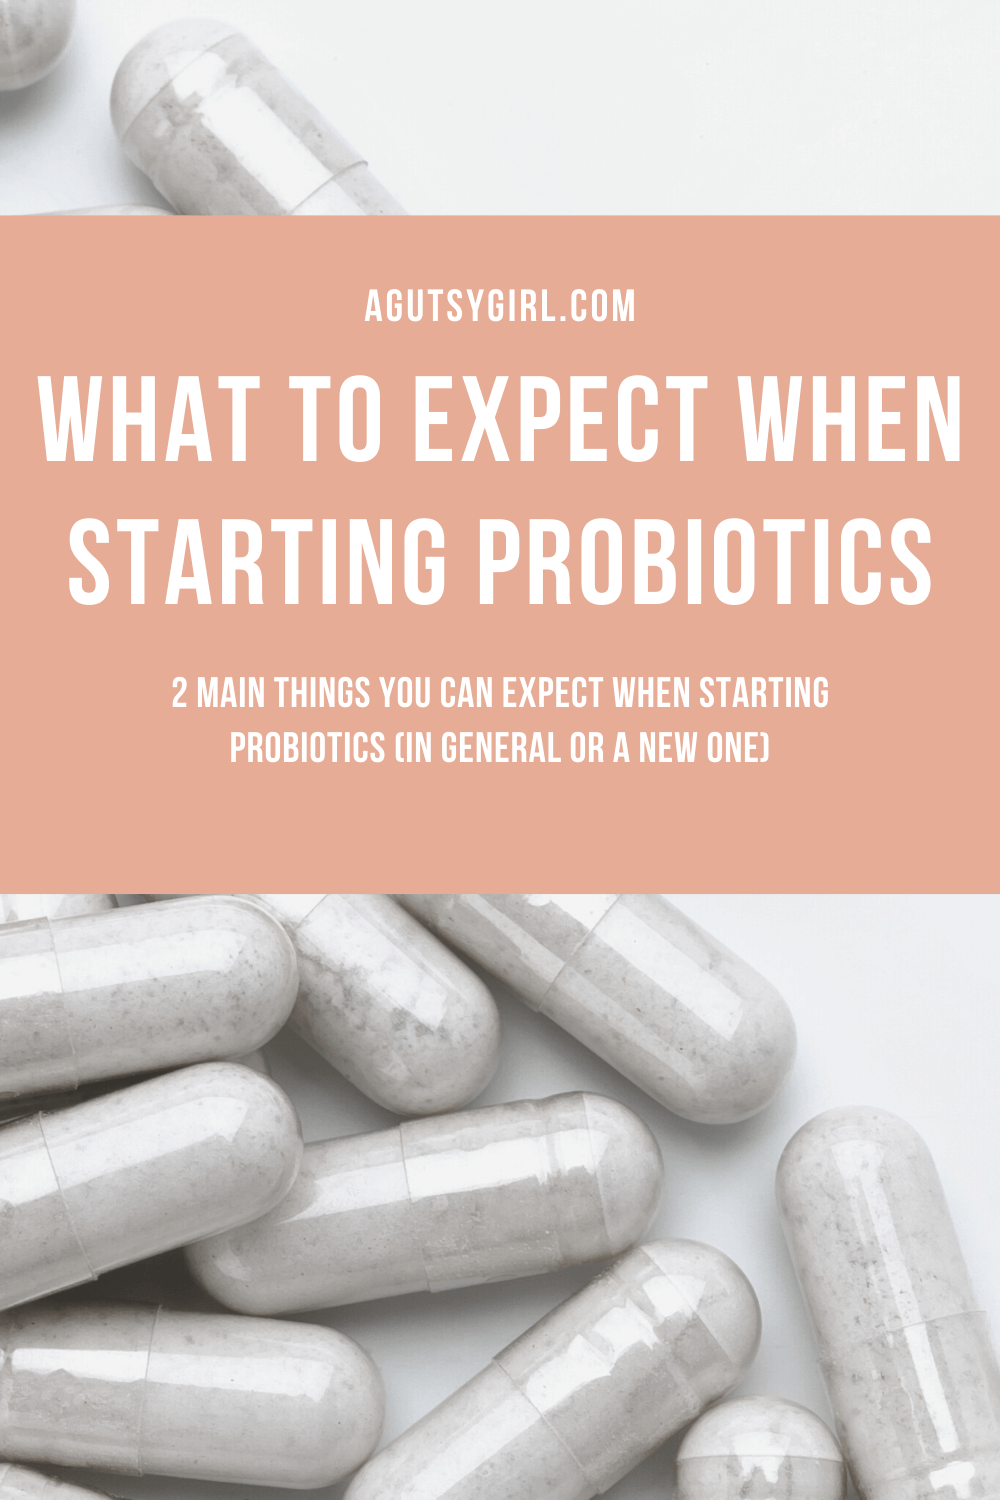 What to Expect When Starting Probiotics agutsygirl.com antioxidant #antioxidant #probiotic #guthealth